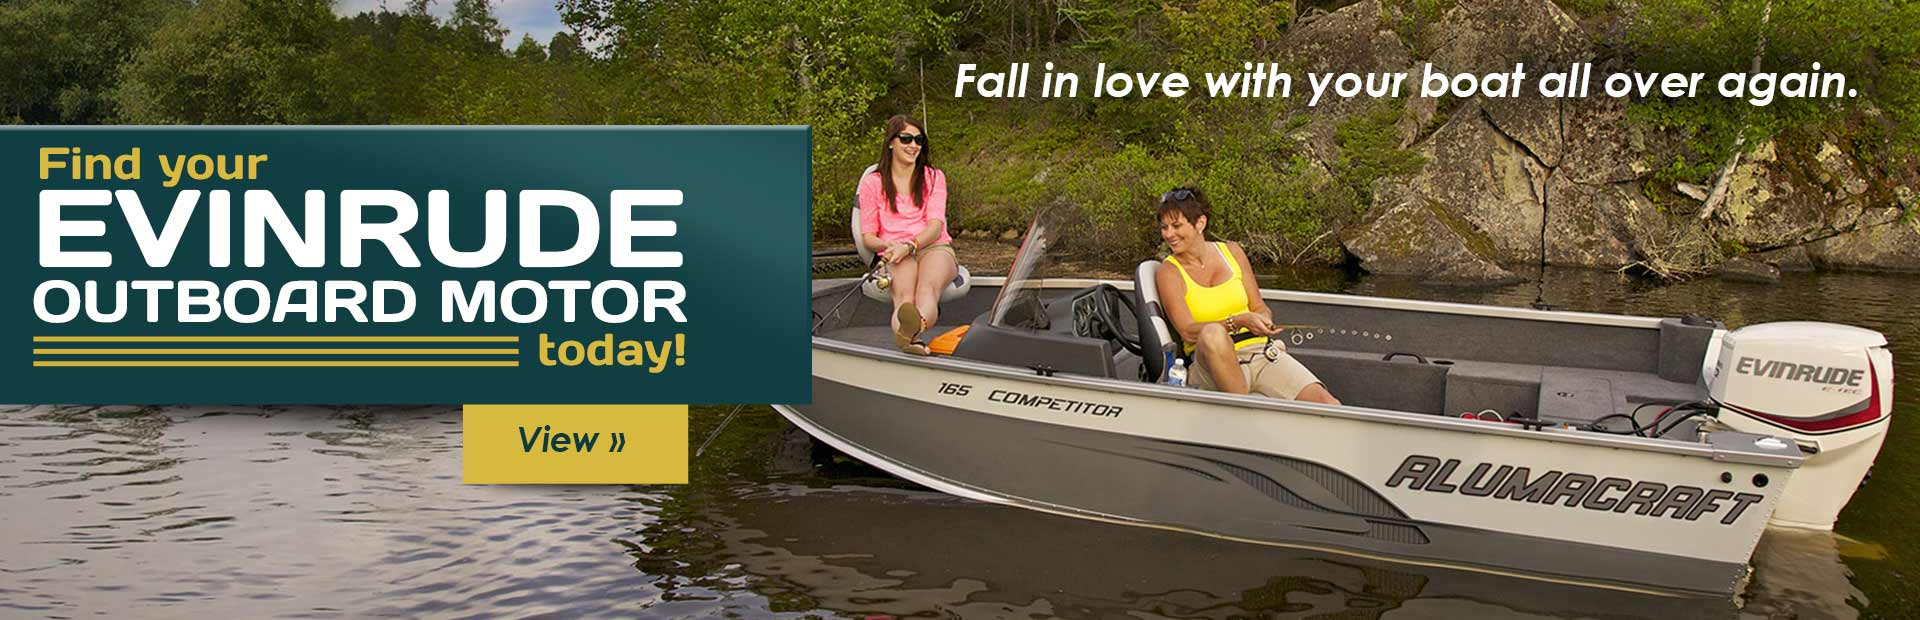 Click here to browse our selection of Evinrude outboard motors, and fall in love with your boat all